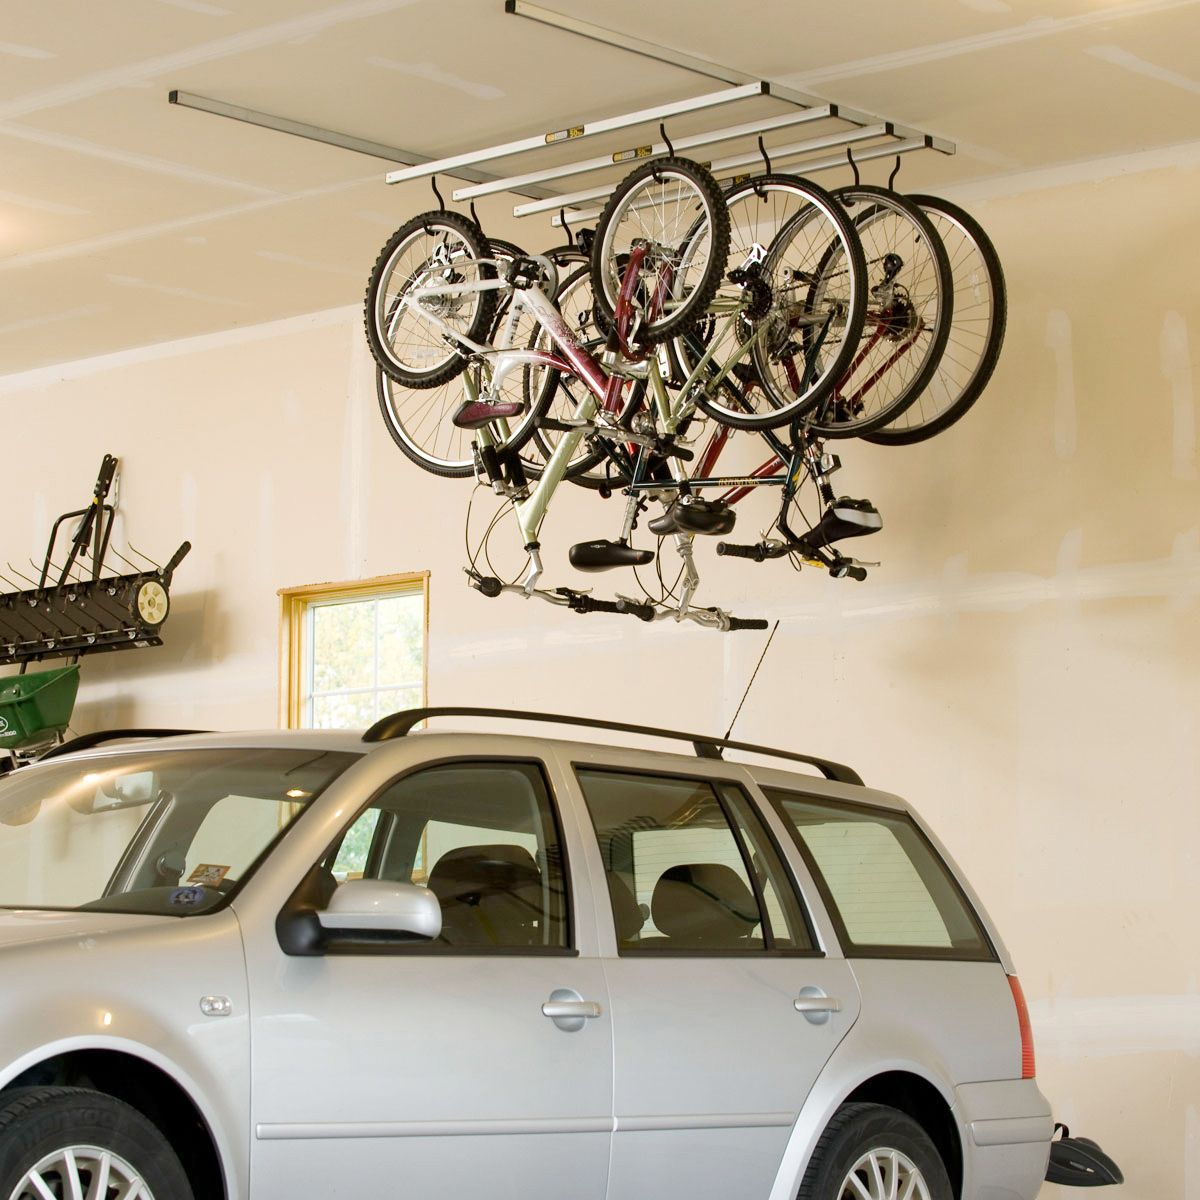 What S Better Than Smart Bike Stroage For Your Garage One That Maximizes The Empty Space Above Your Car Bike Storage Garage Bike Rack Garage Hanging Bike Rack